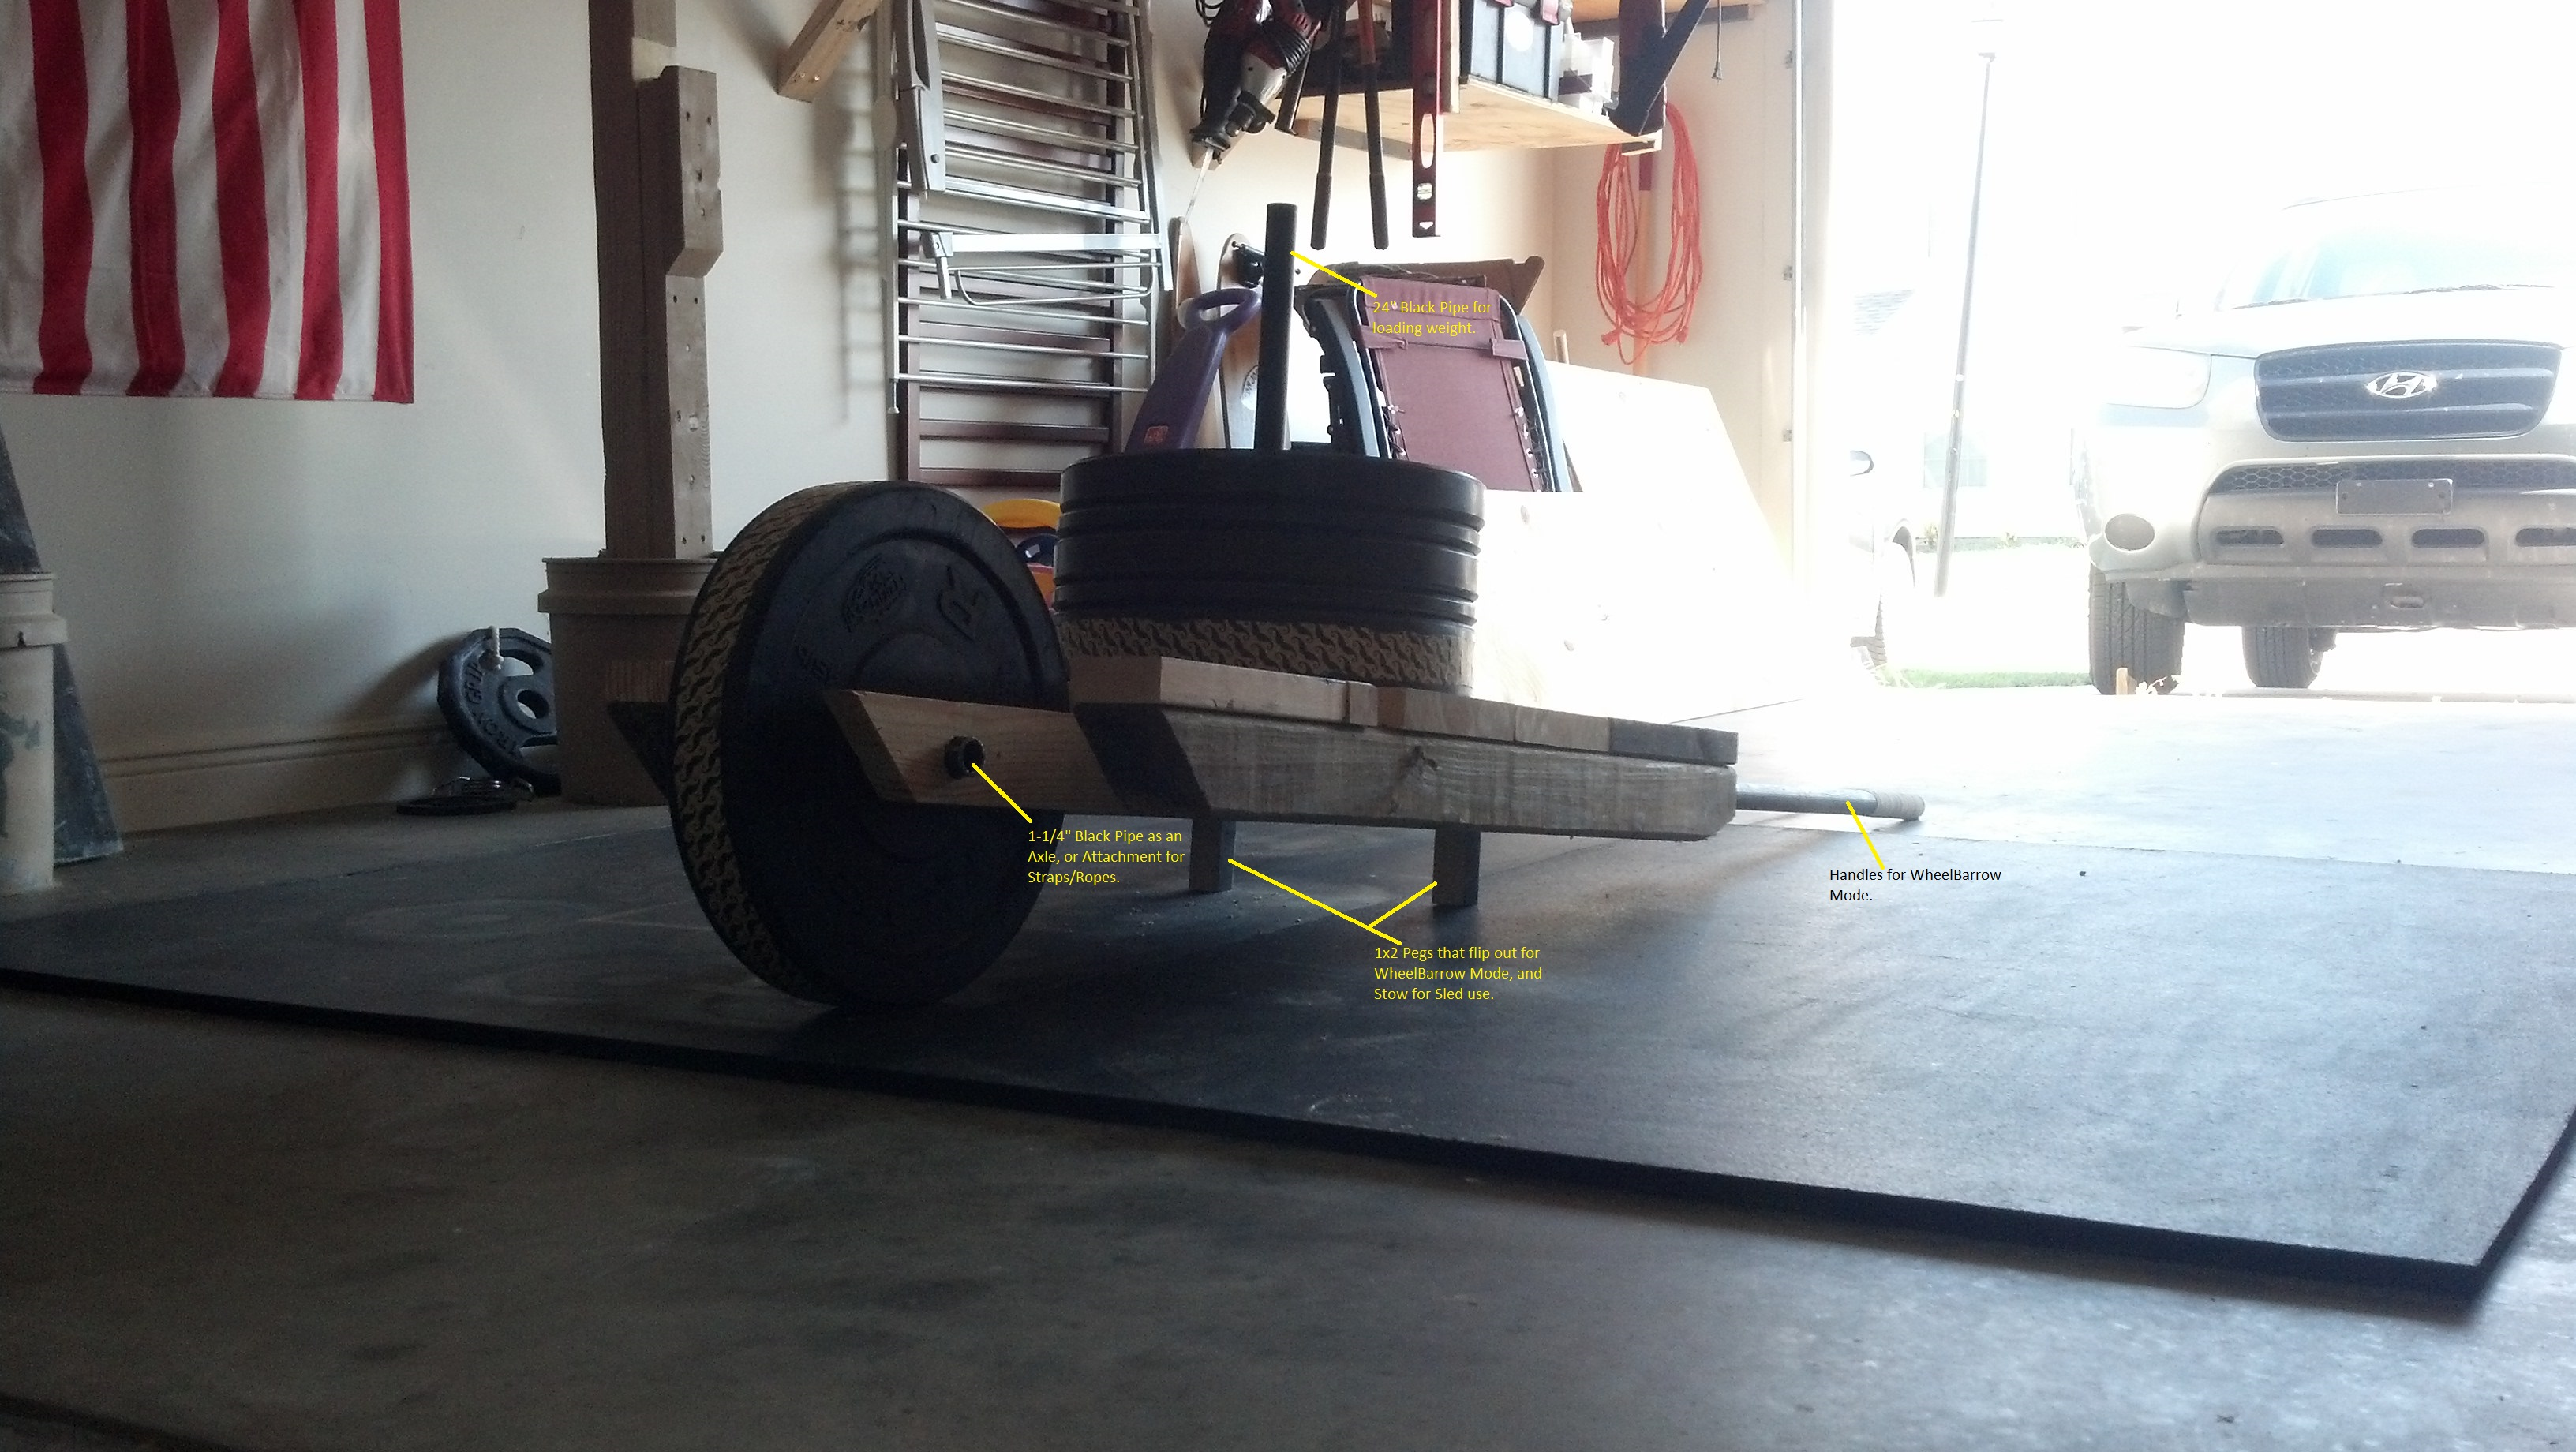 diy wheelbarrow and sled 2 in 1